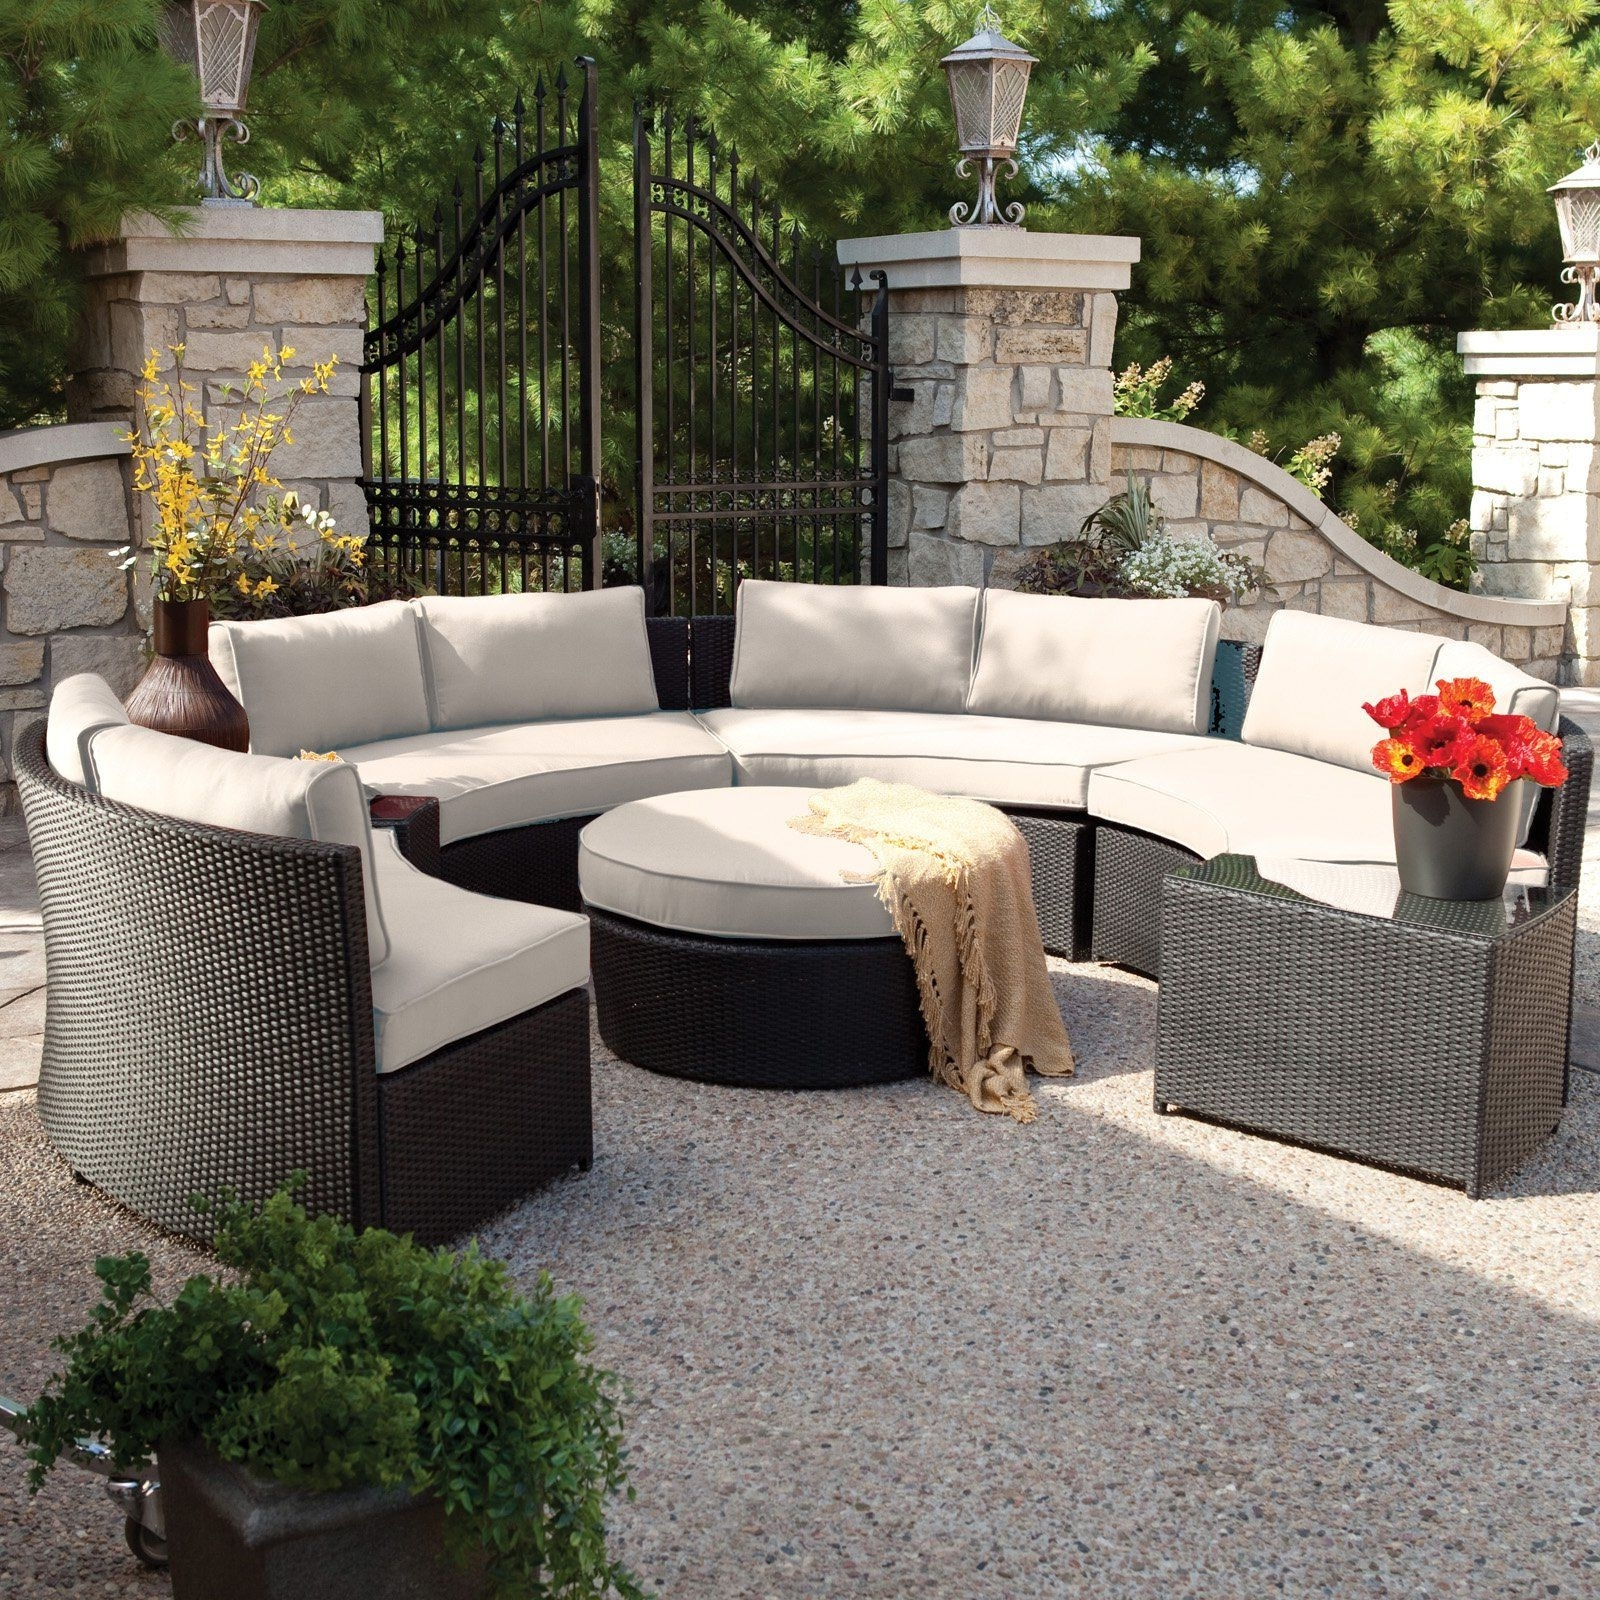 Resin Wicker Patio Conversation Sets Throughout Favorite Belham Living Meridian Round Outdoor Wicker Patio Furniture Set With (Gallery 13 of 20)